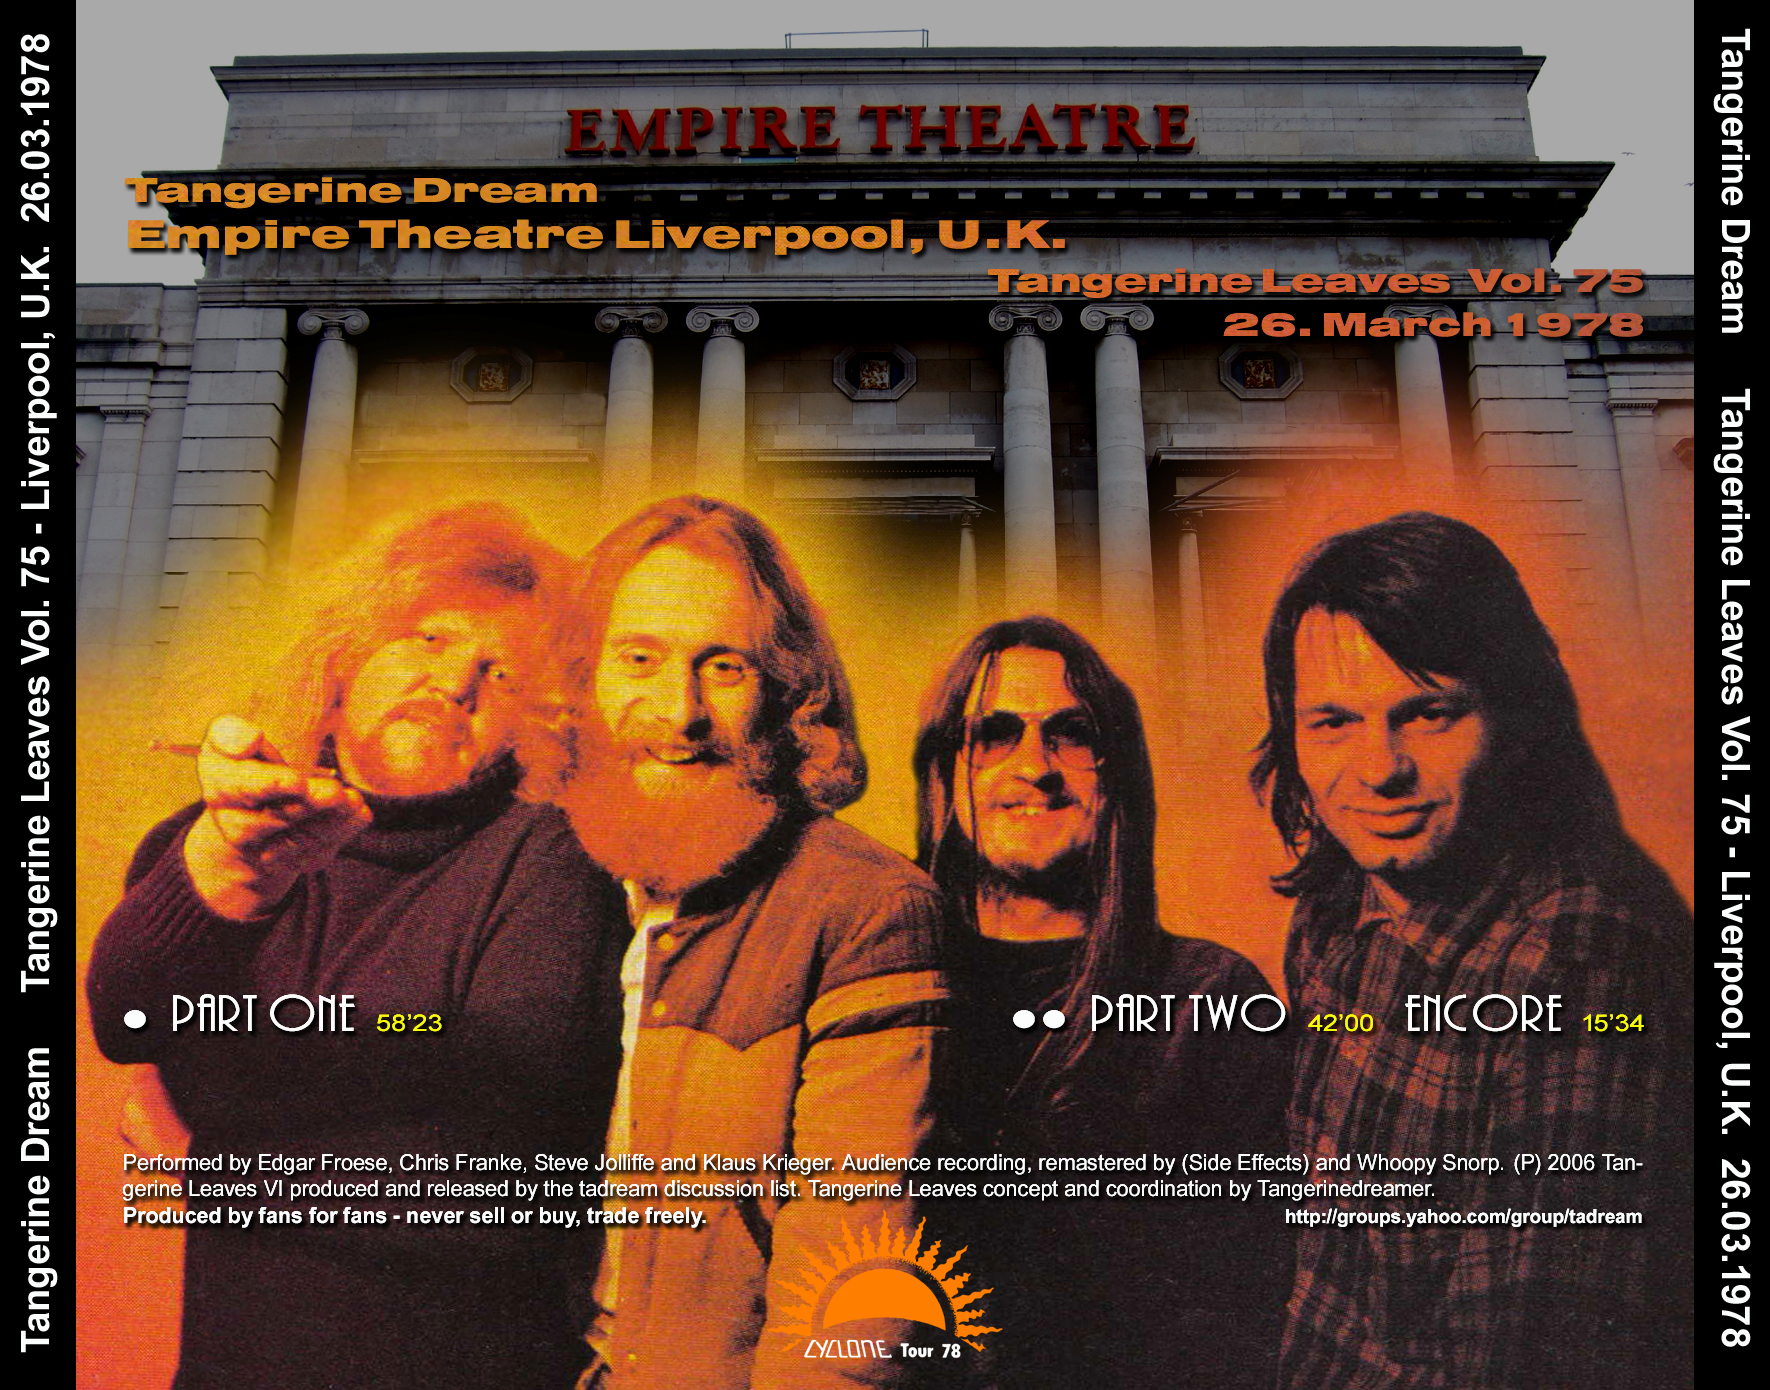 TangerineDream1978-03-26EmpireLiverpoolUK (1).jpg